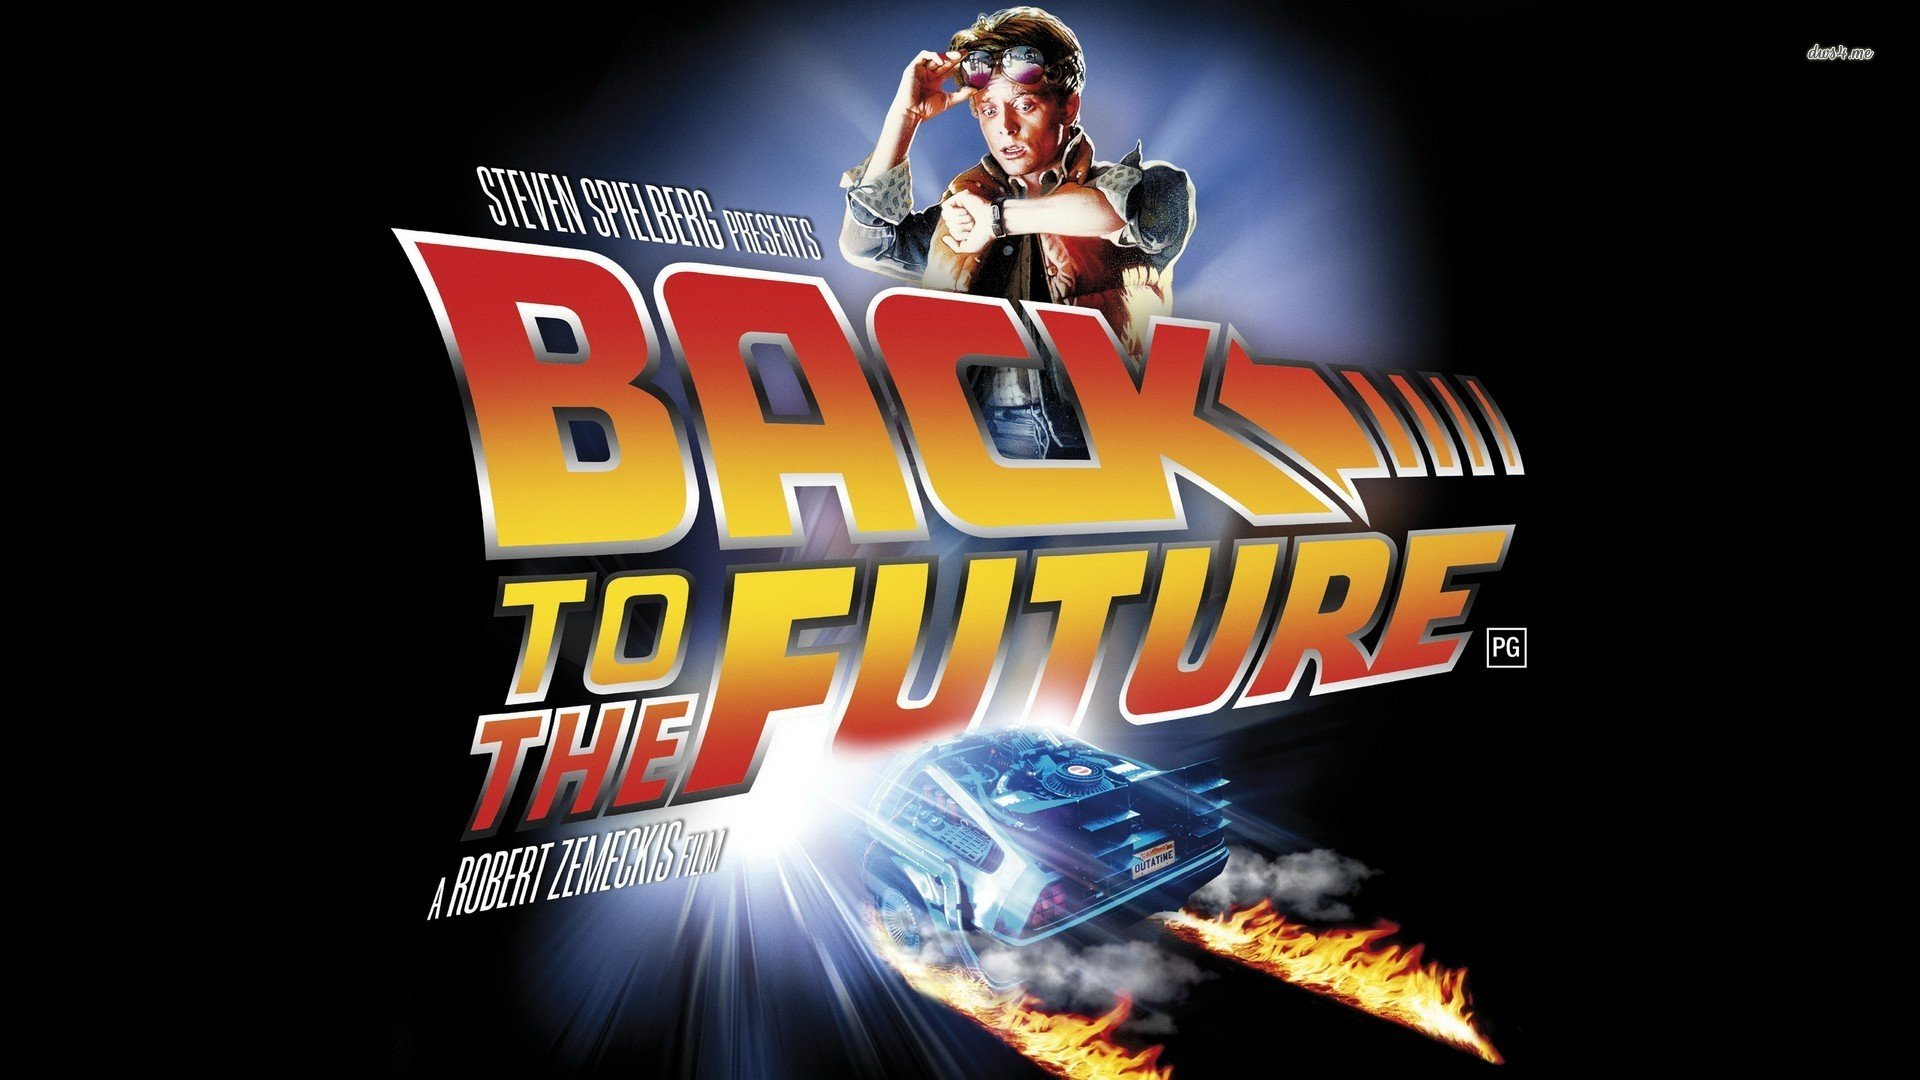 Back To The Future Poster  wallpaper   redftaconko: back to future wallpaper 1920x1080